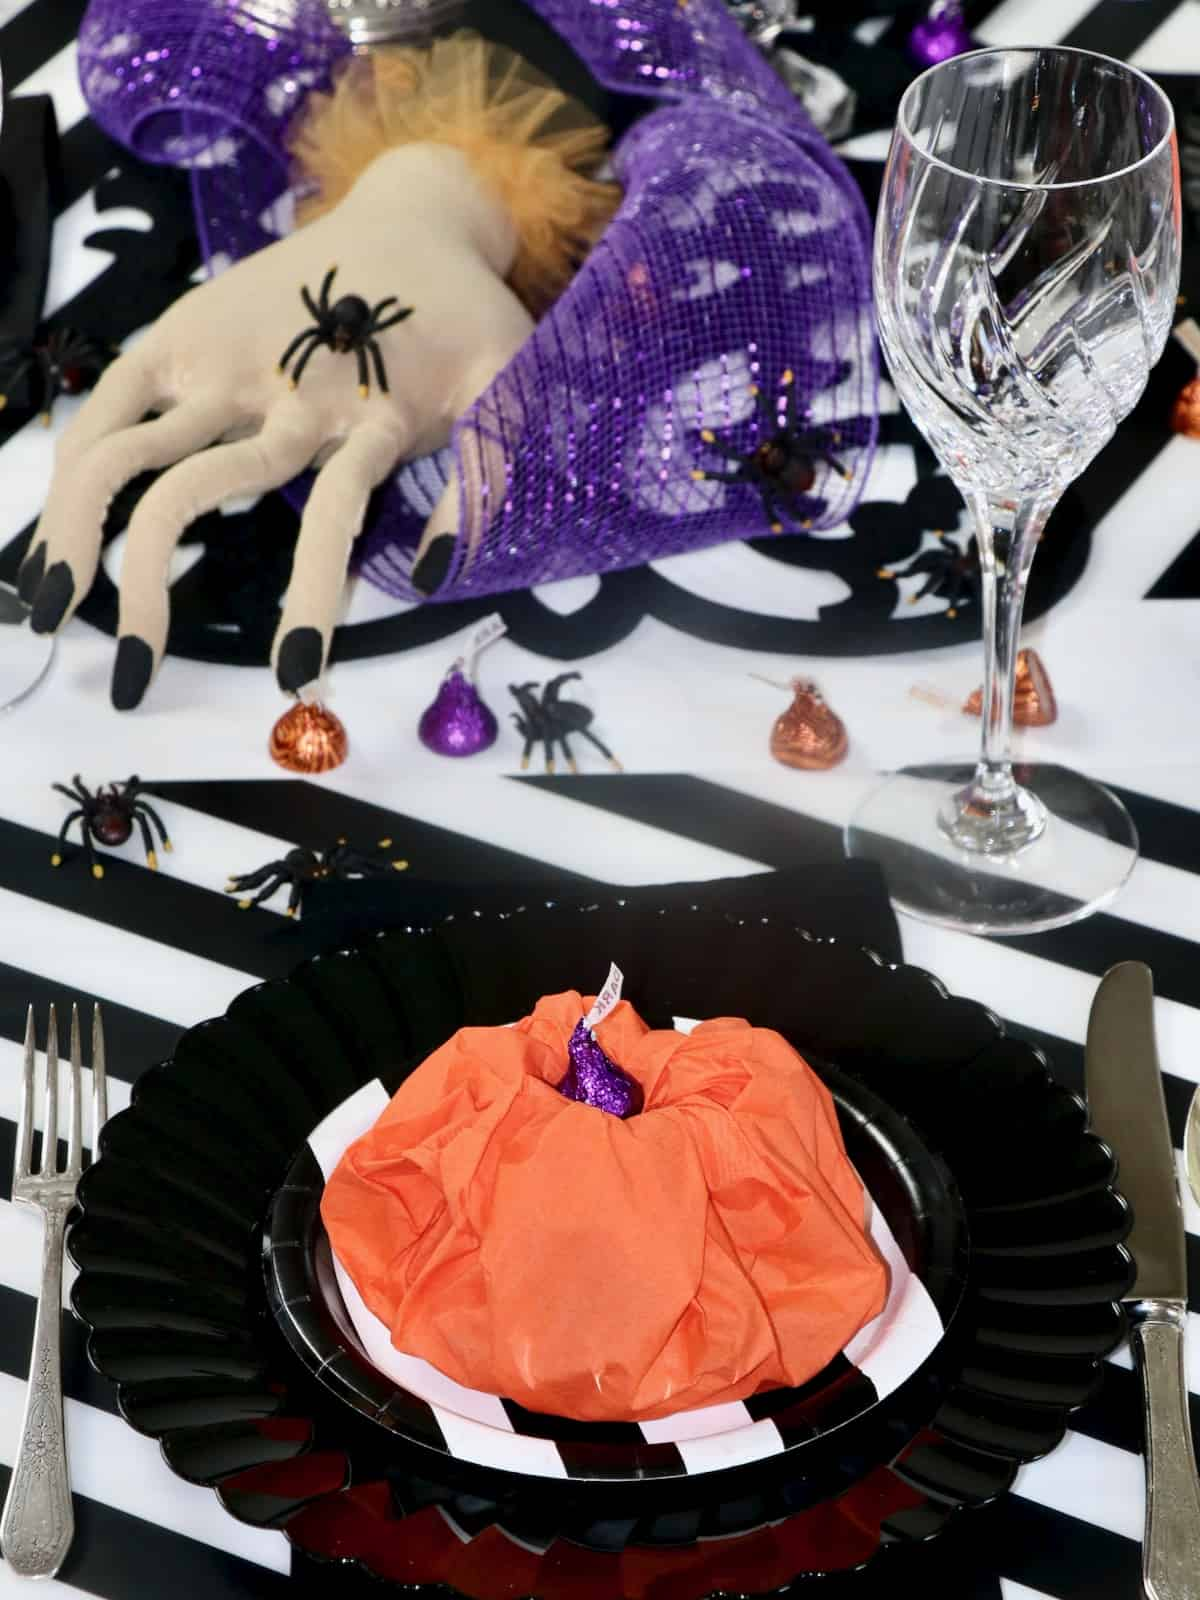 Halloween table setting with paper napkin pumpkin and creepy hand centerpiece.